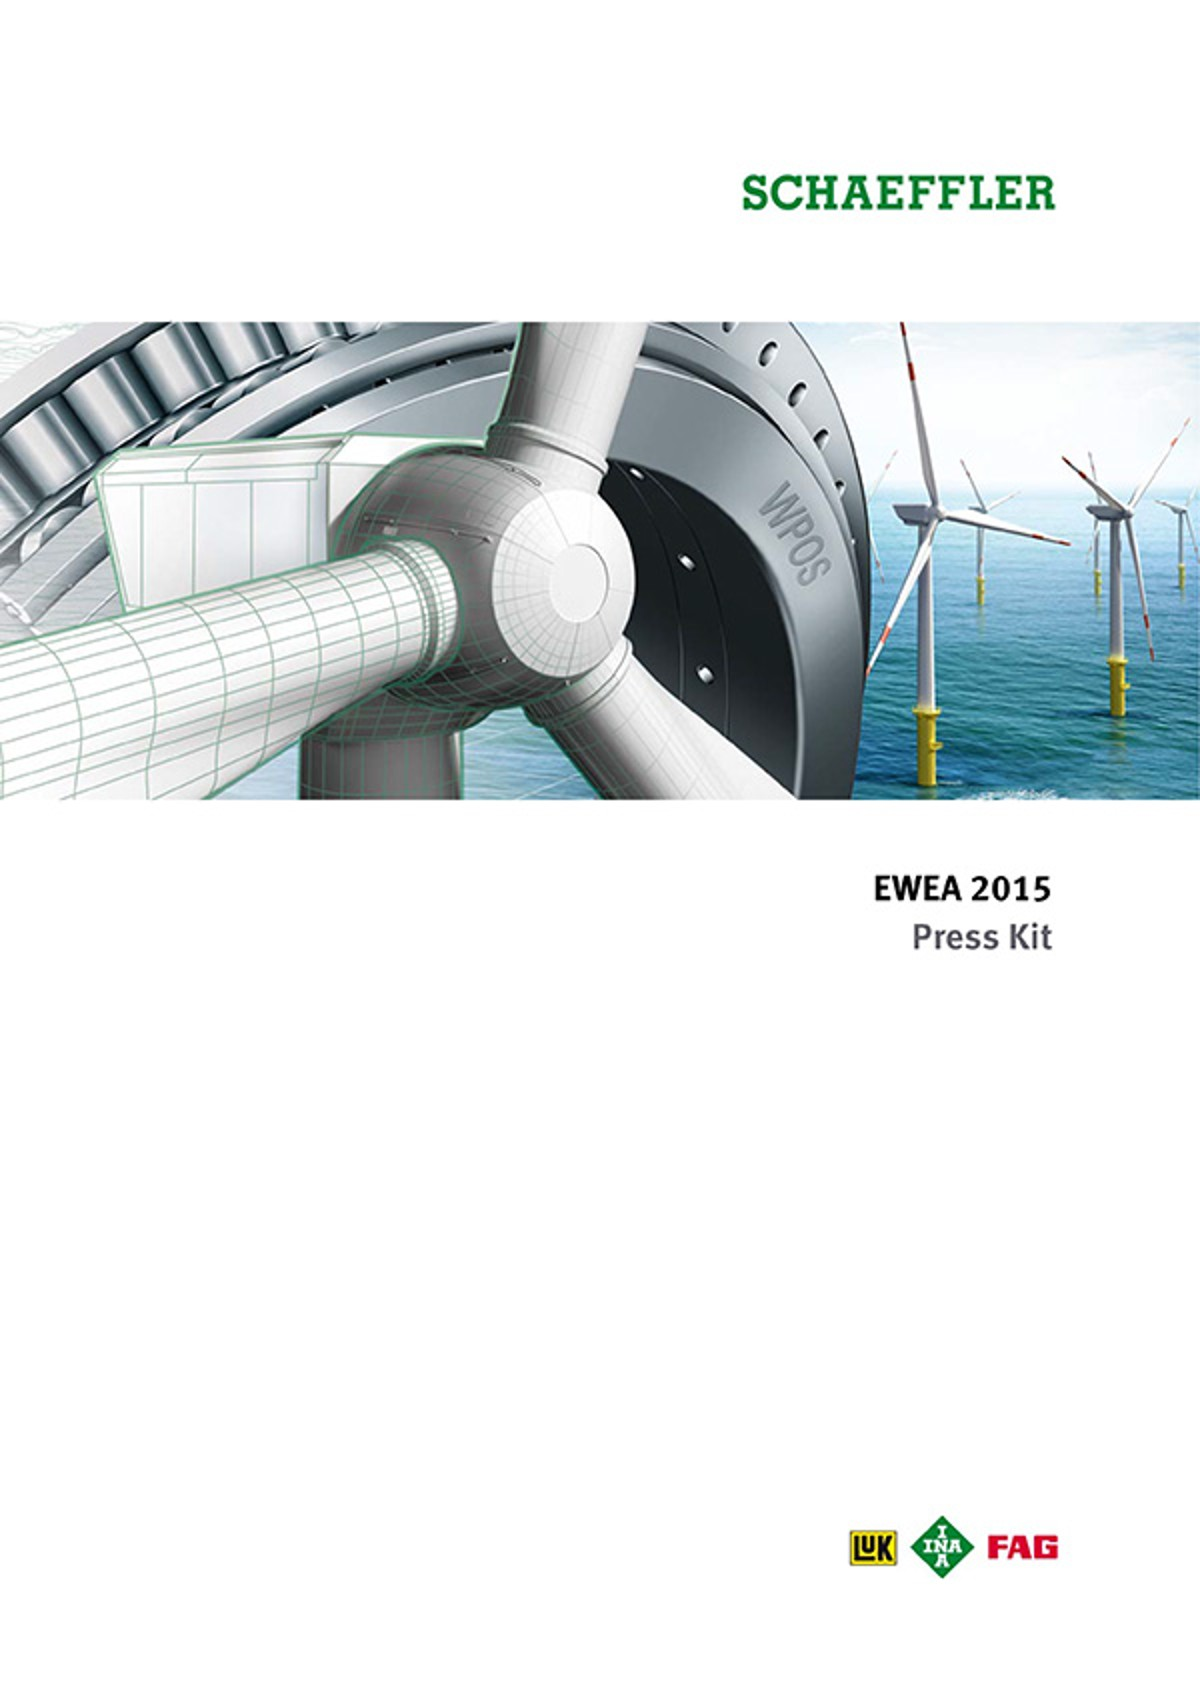 EWEA 2015 Schaeffler Press Kit